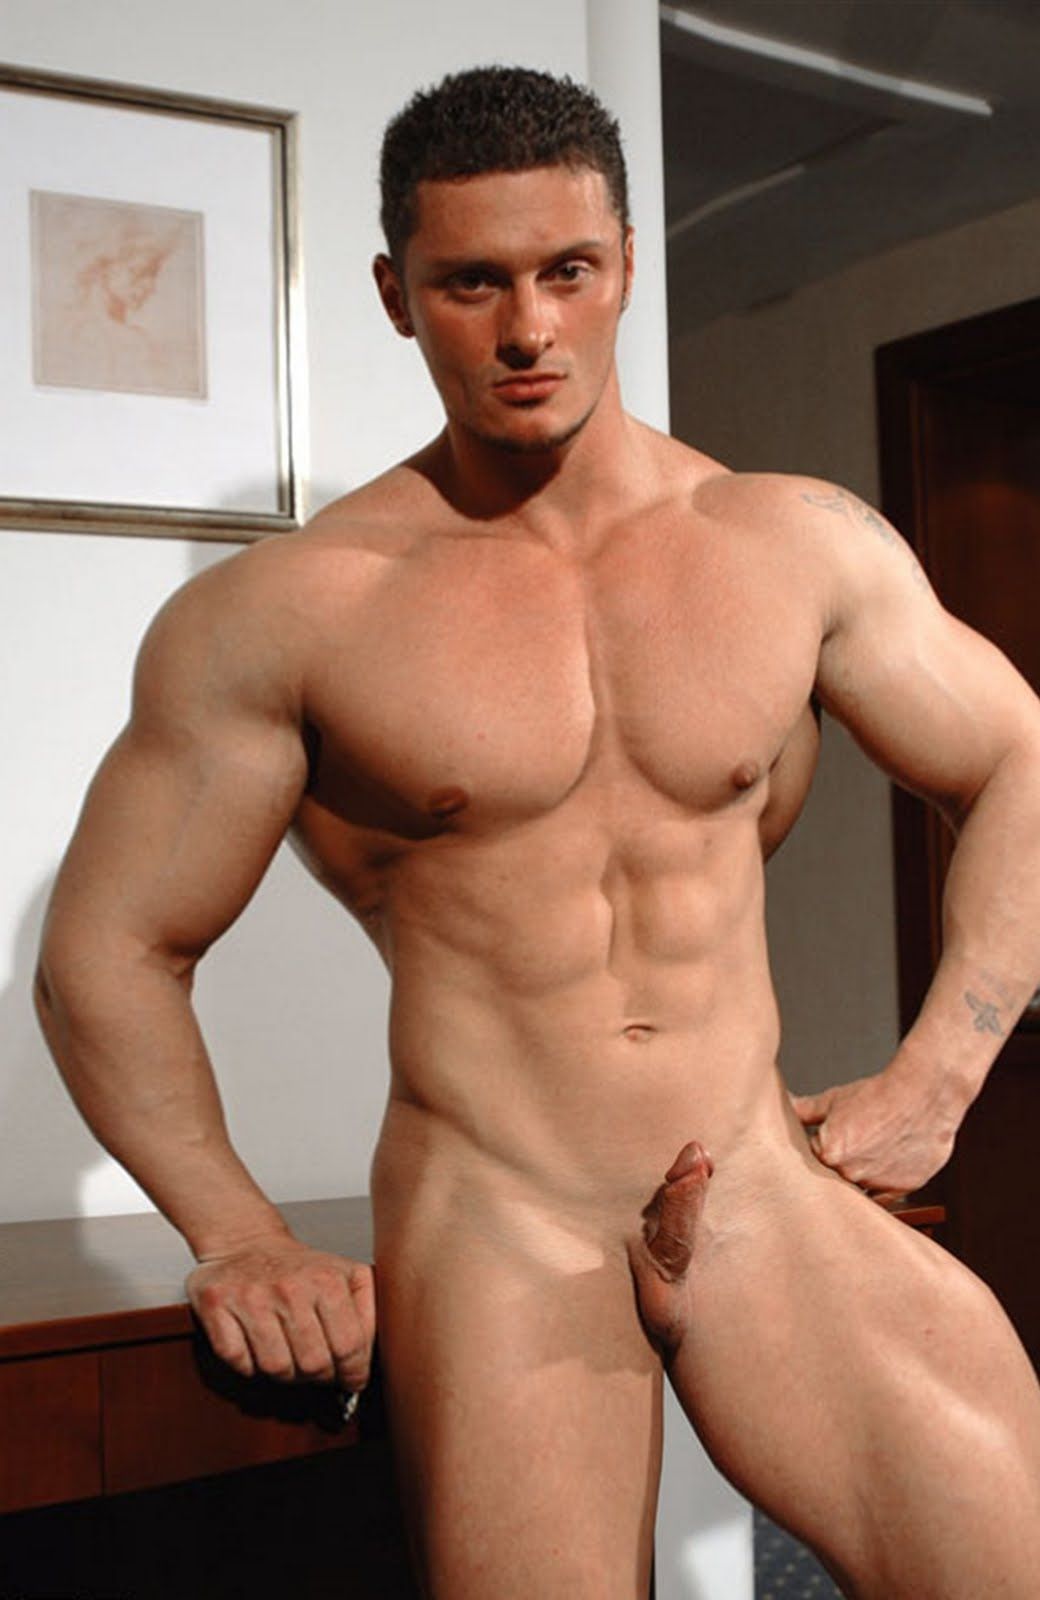 image Boys with small penises tubes gay he039s